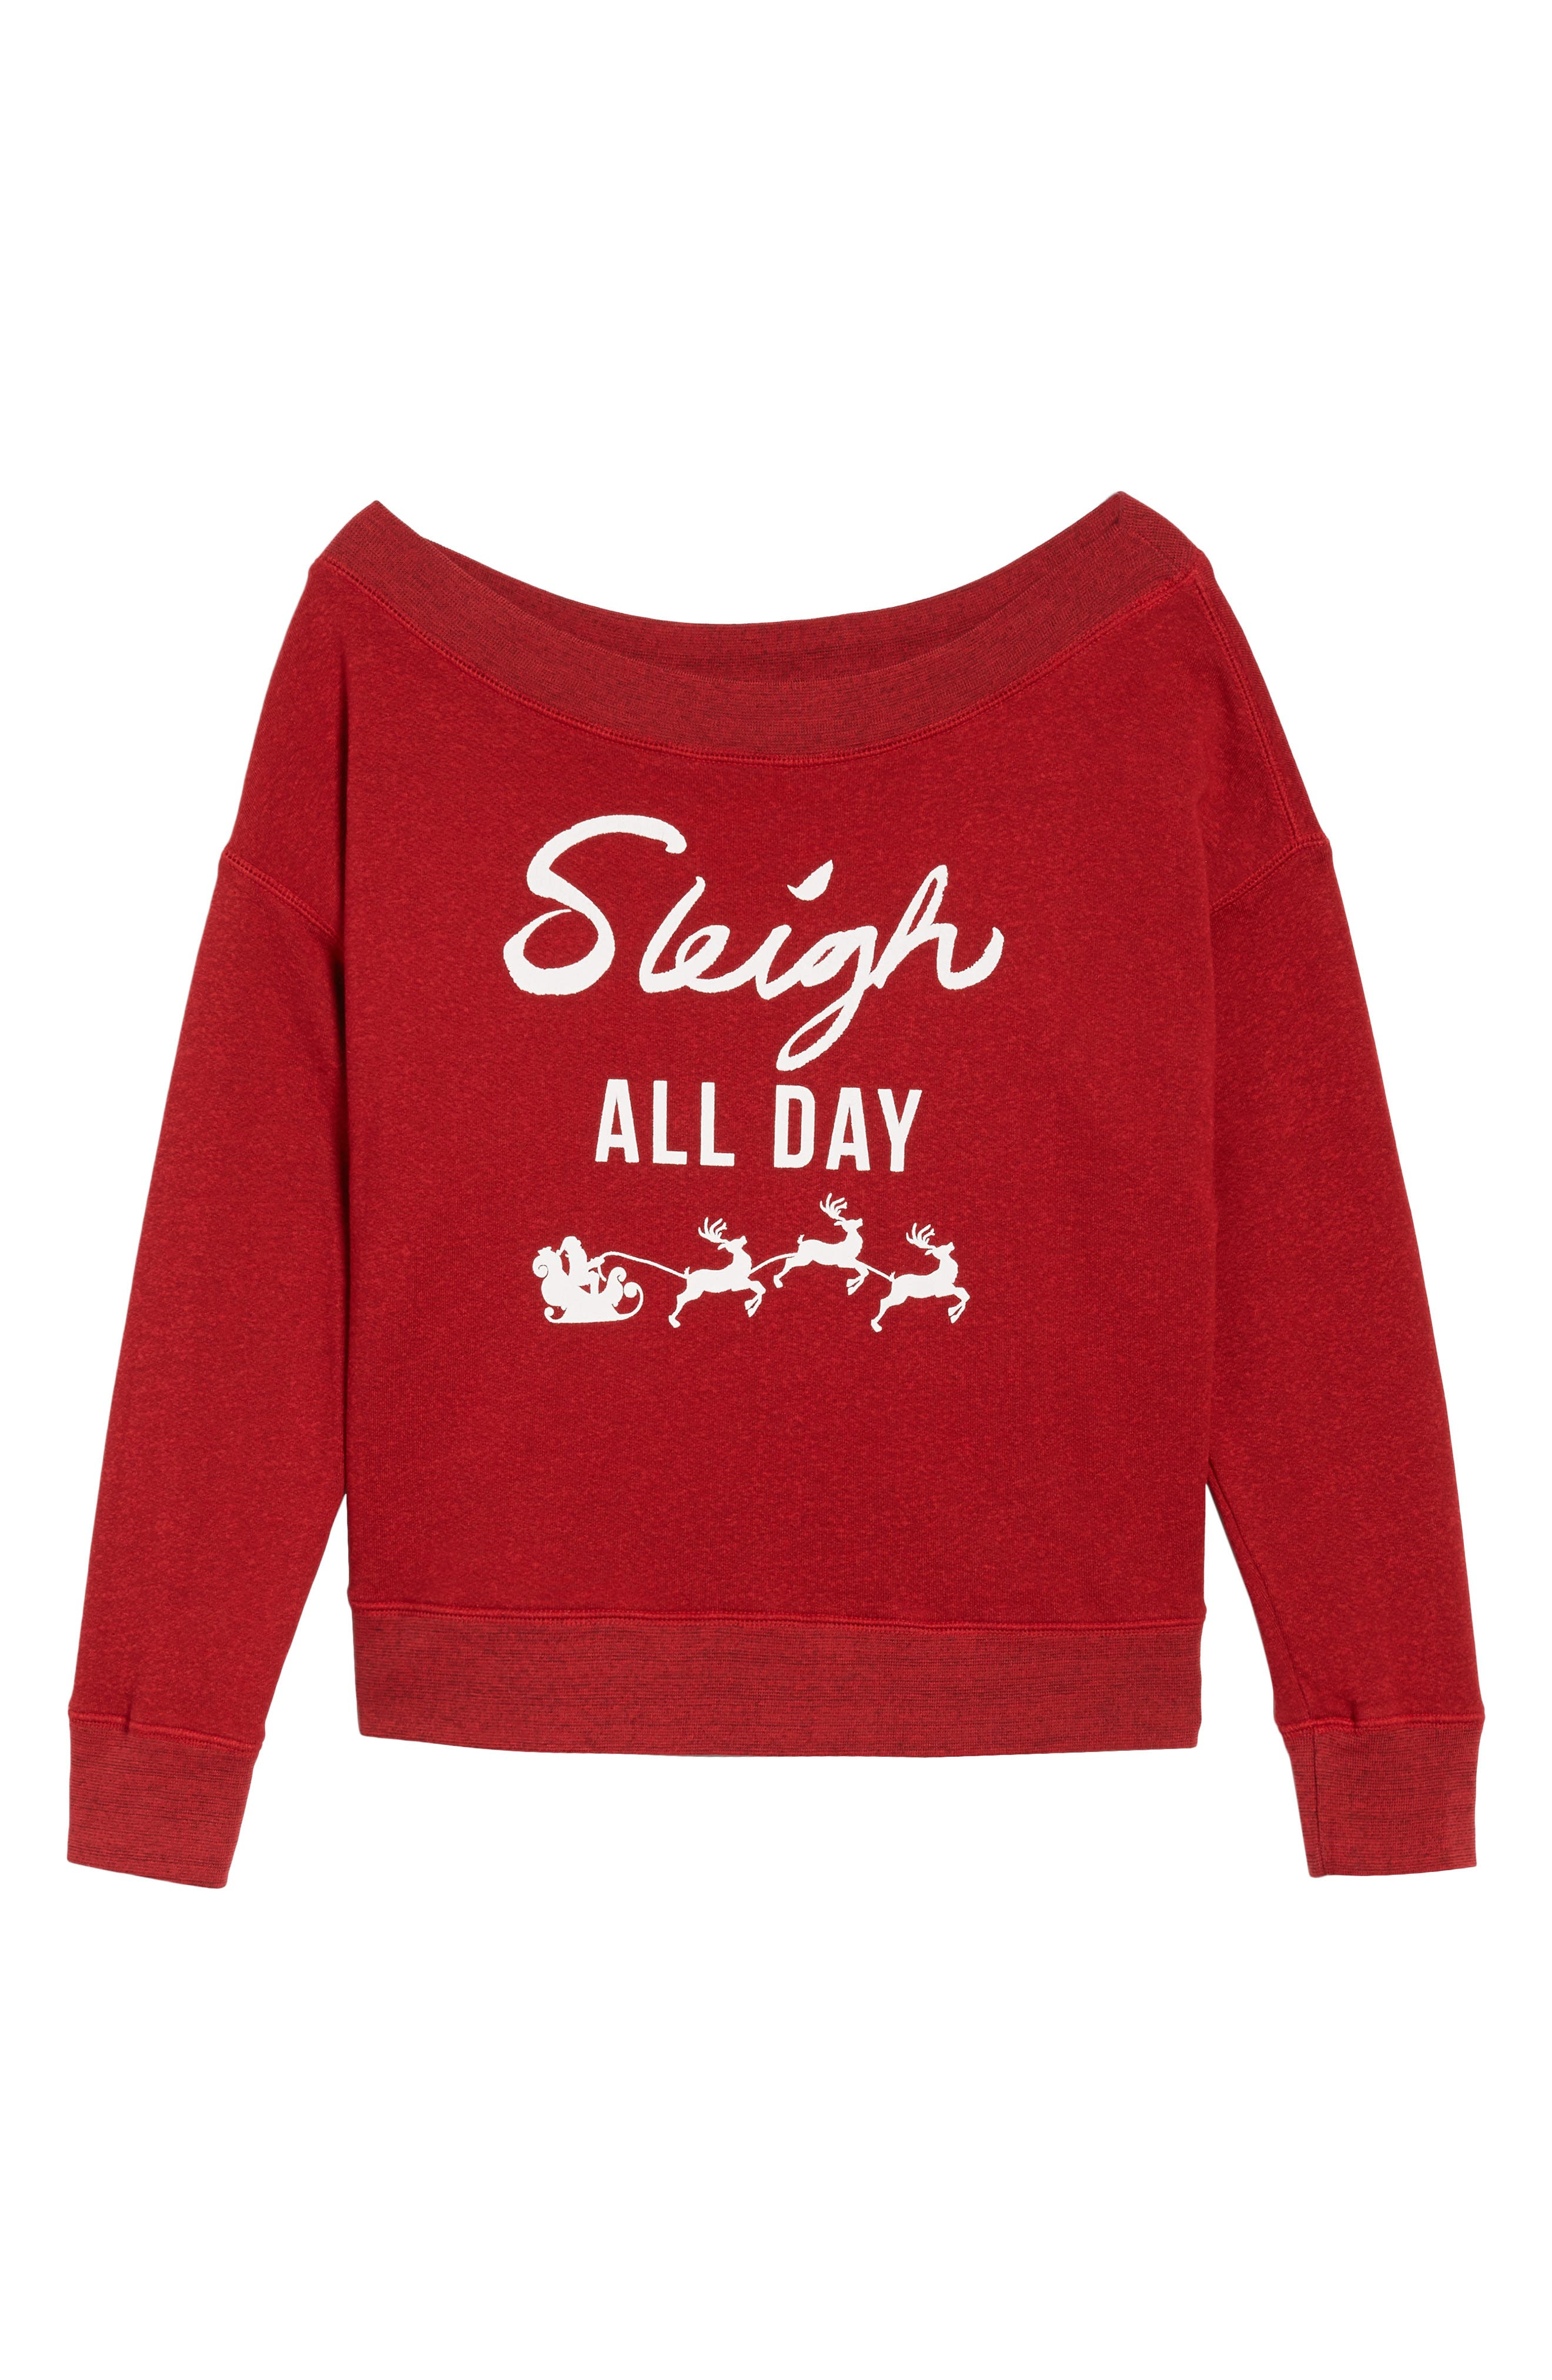 Sleigh All Day Sweatshirt,                             Alternate thumbnail 6, color,                             604